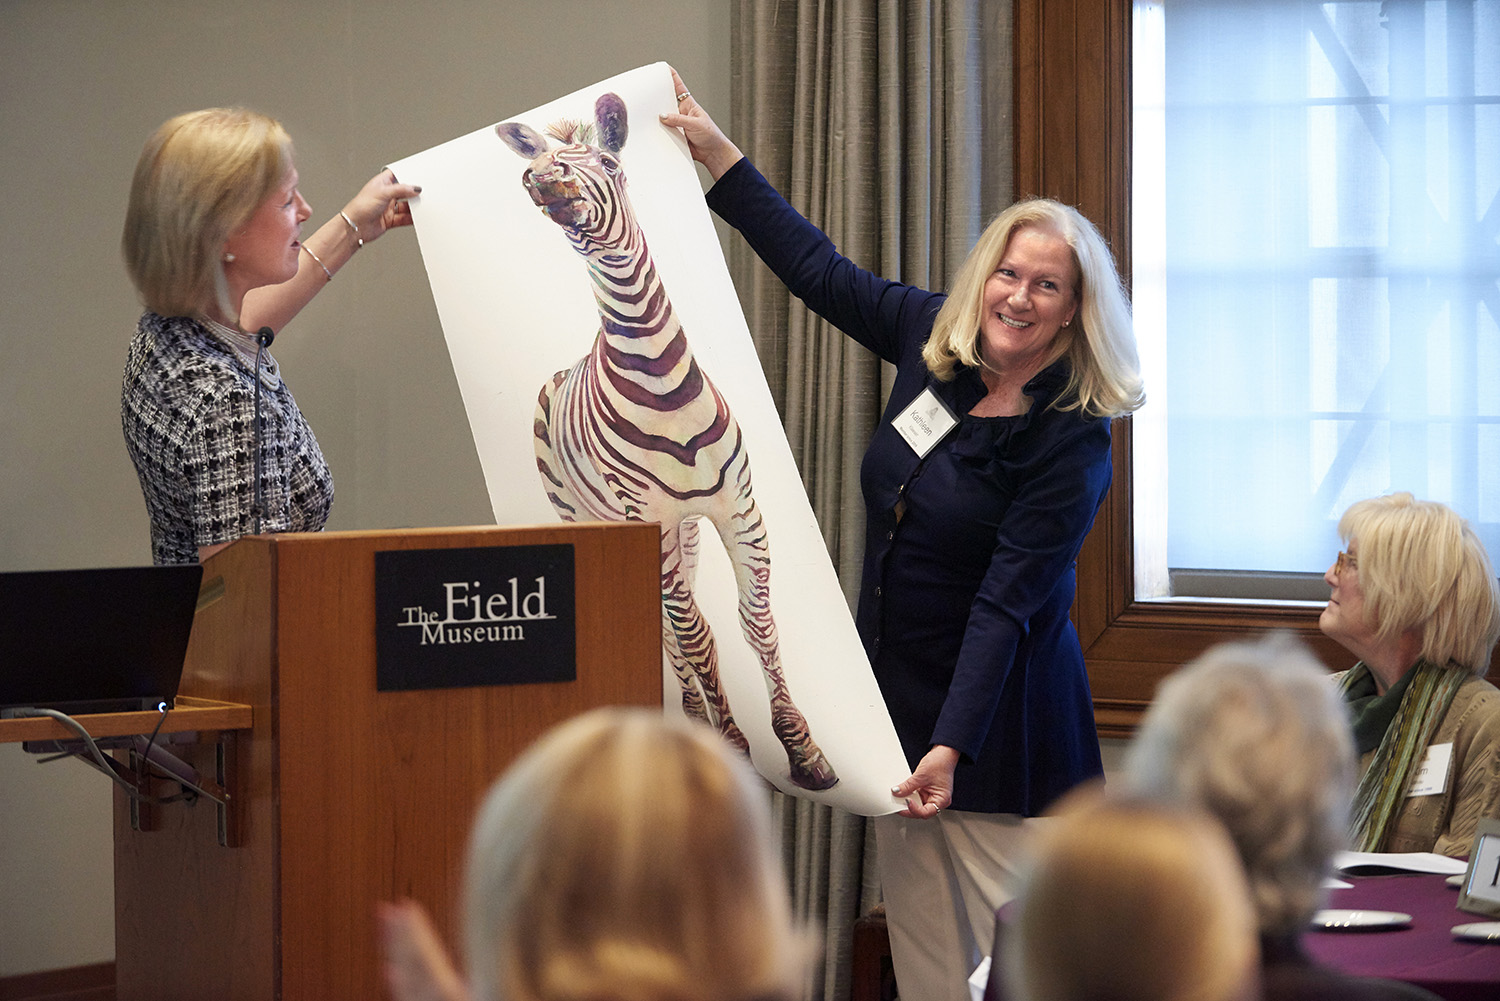 Two women hold up a painting of a zebra by Field Museum artist-in-residence Peggy McNamara, while standing behind a podium with the Museum's logo on it. Other Women's Board members, seated at tables, look on.